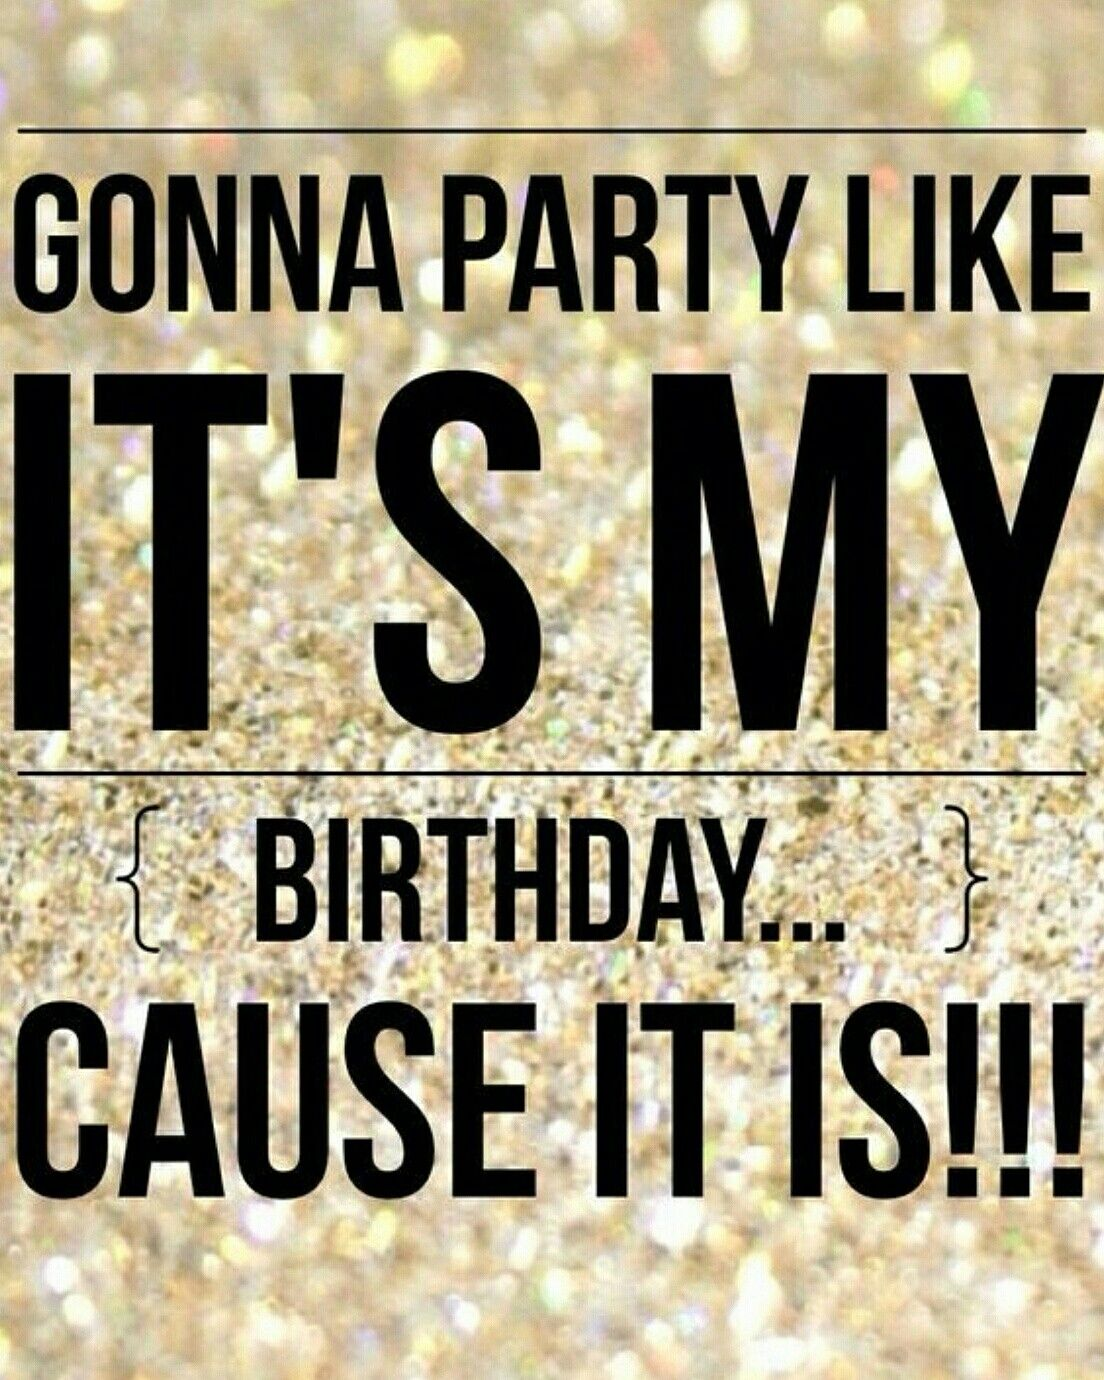 Astonishing Yep Its My Birthday Its My Birthday Birthday Quotes For Me Funny Birthday Cards Online Barepcheapnameinfo